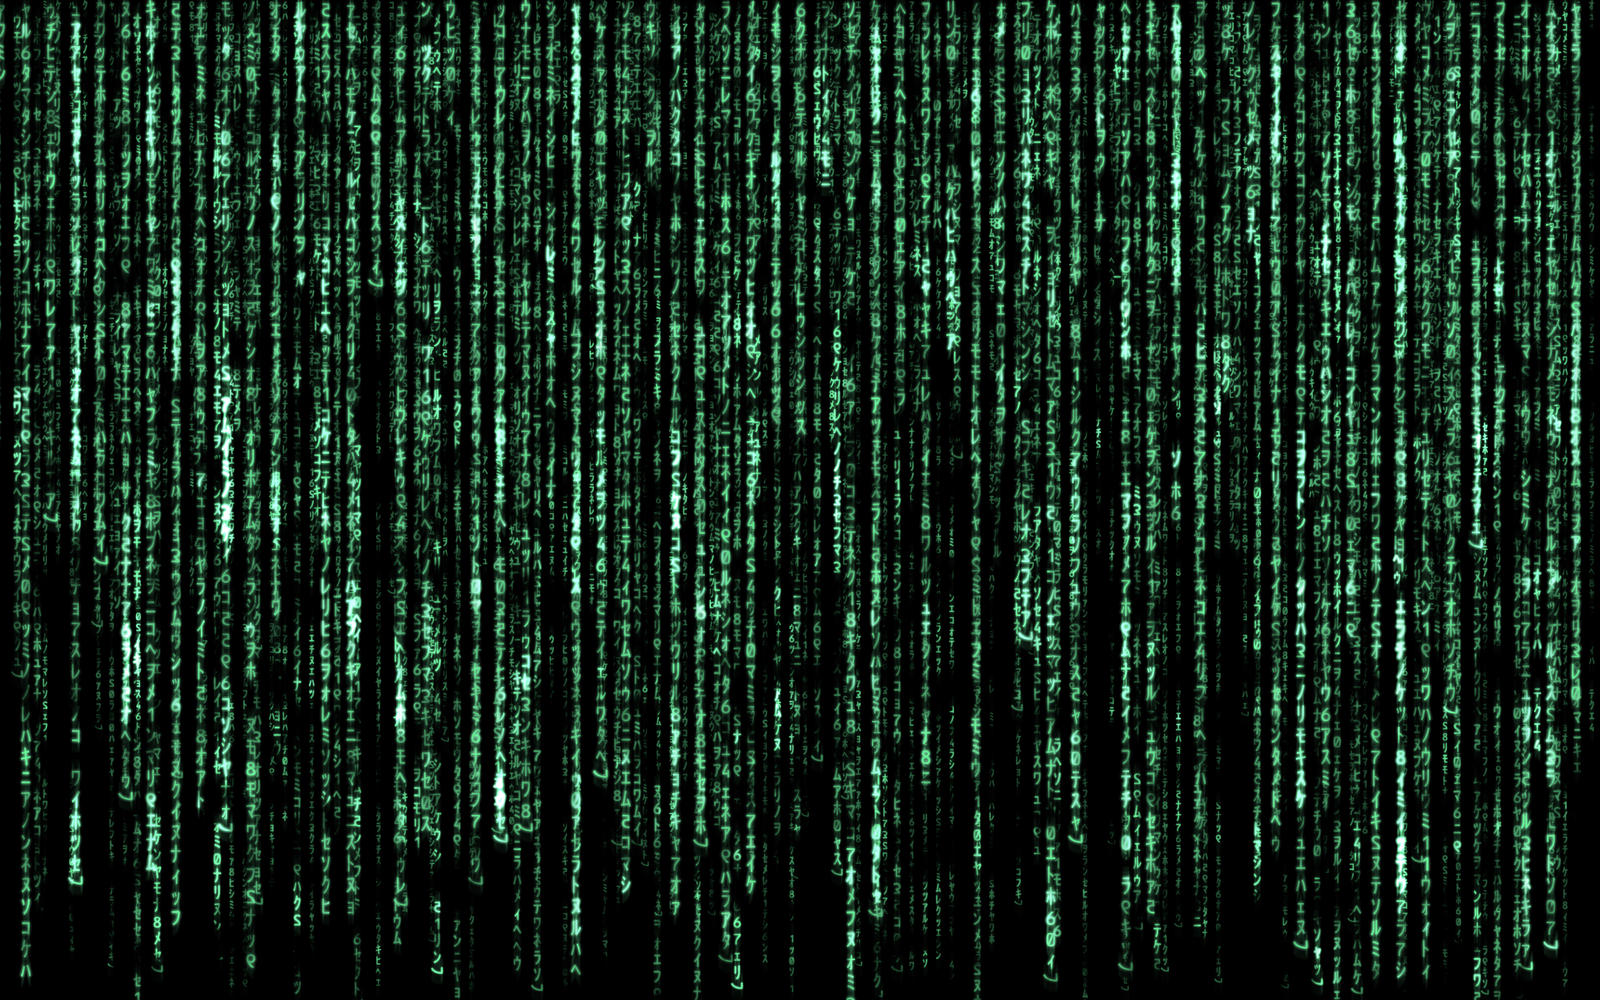 Matrix code wallpaper by Revarn on DeviantArt